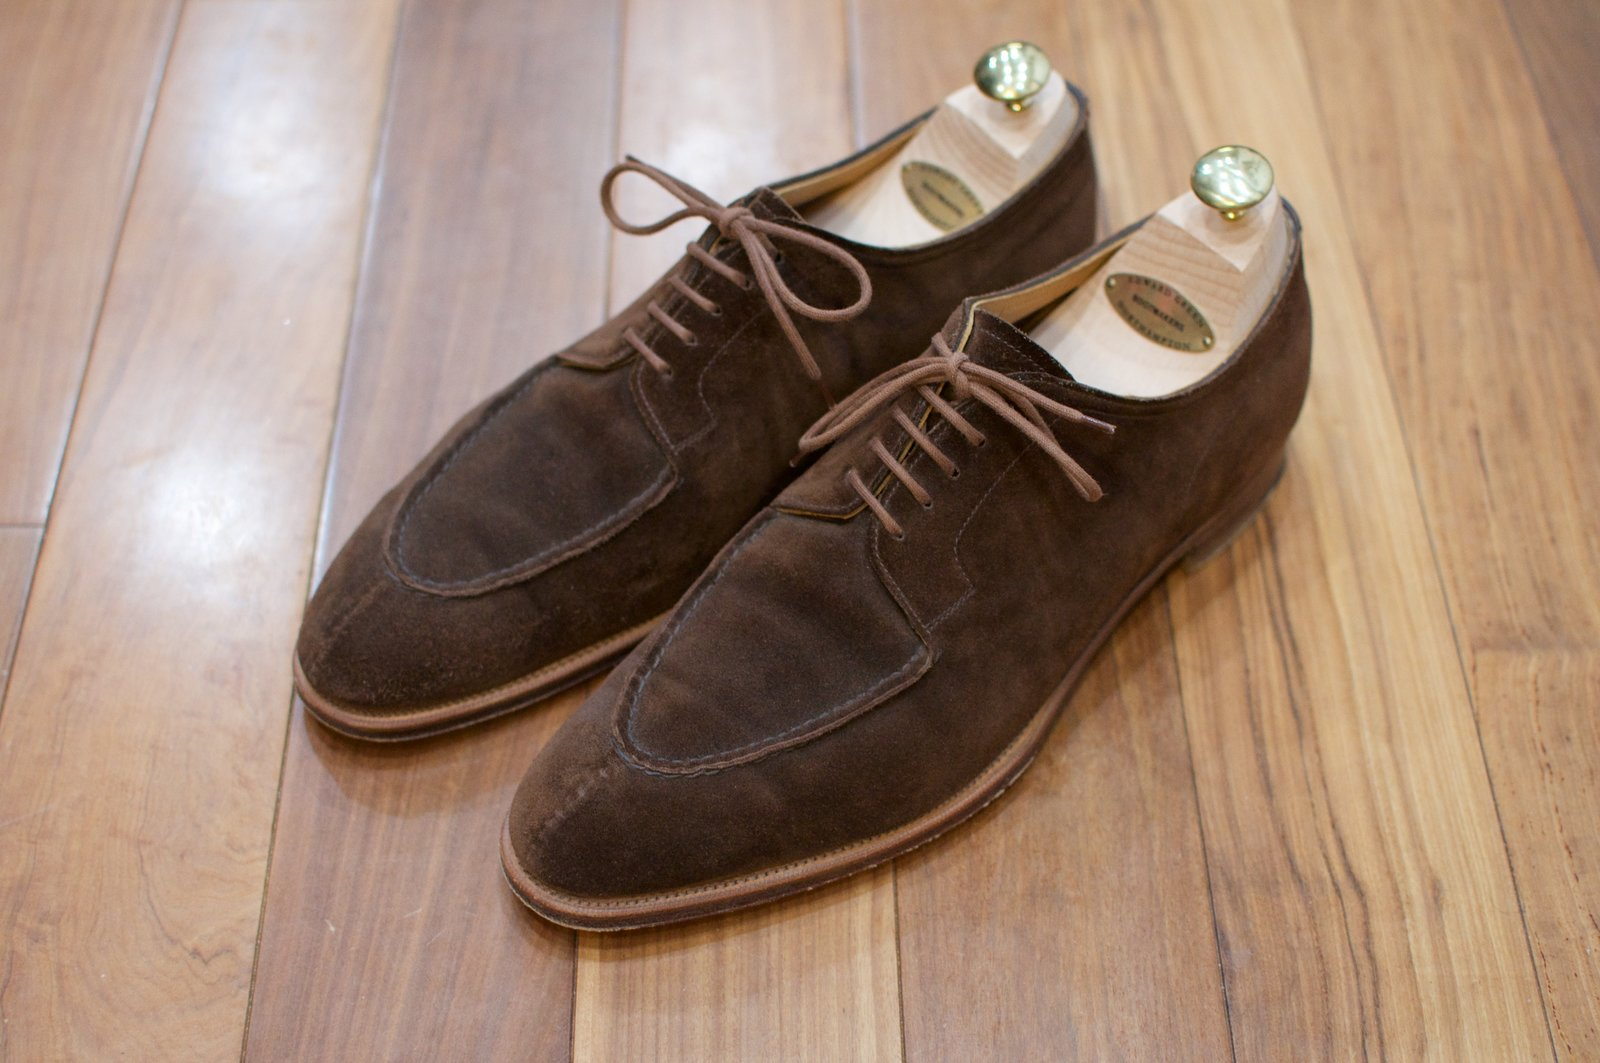 Edward Green Otter Suede Dovers - 2020-02-19 - 1.jpg